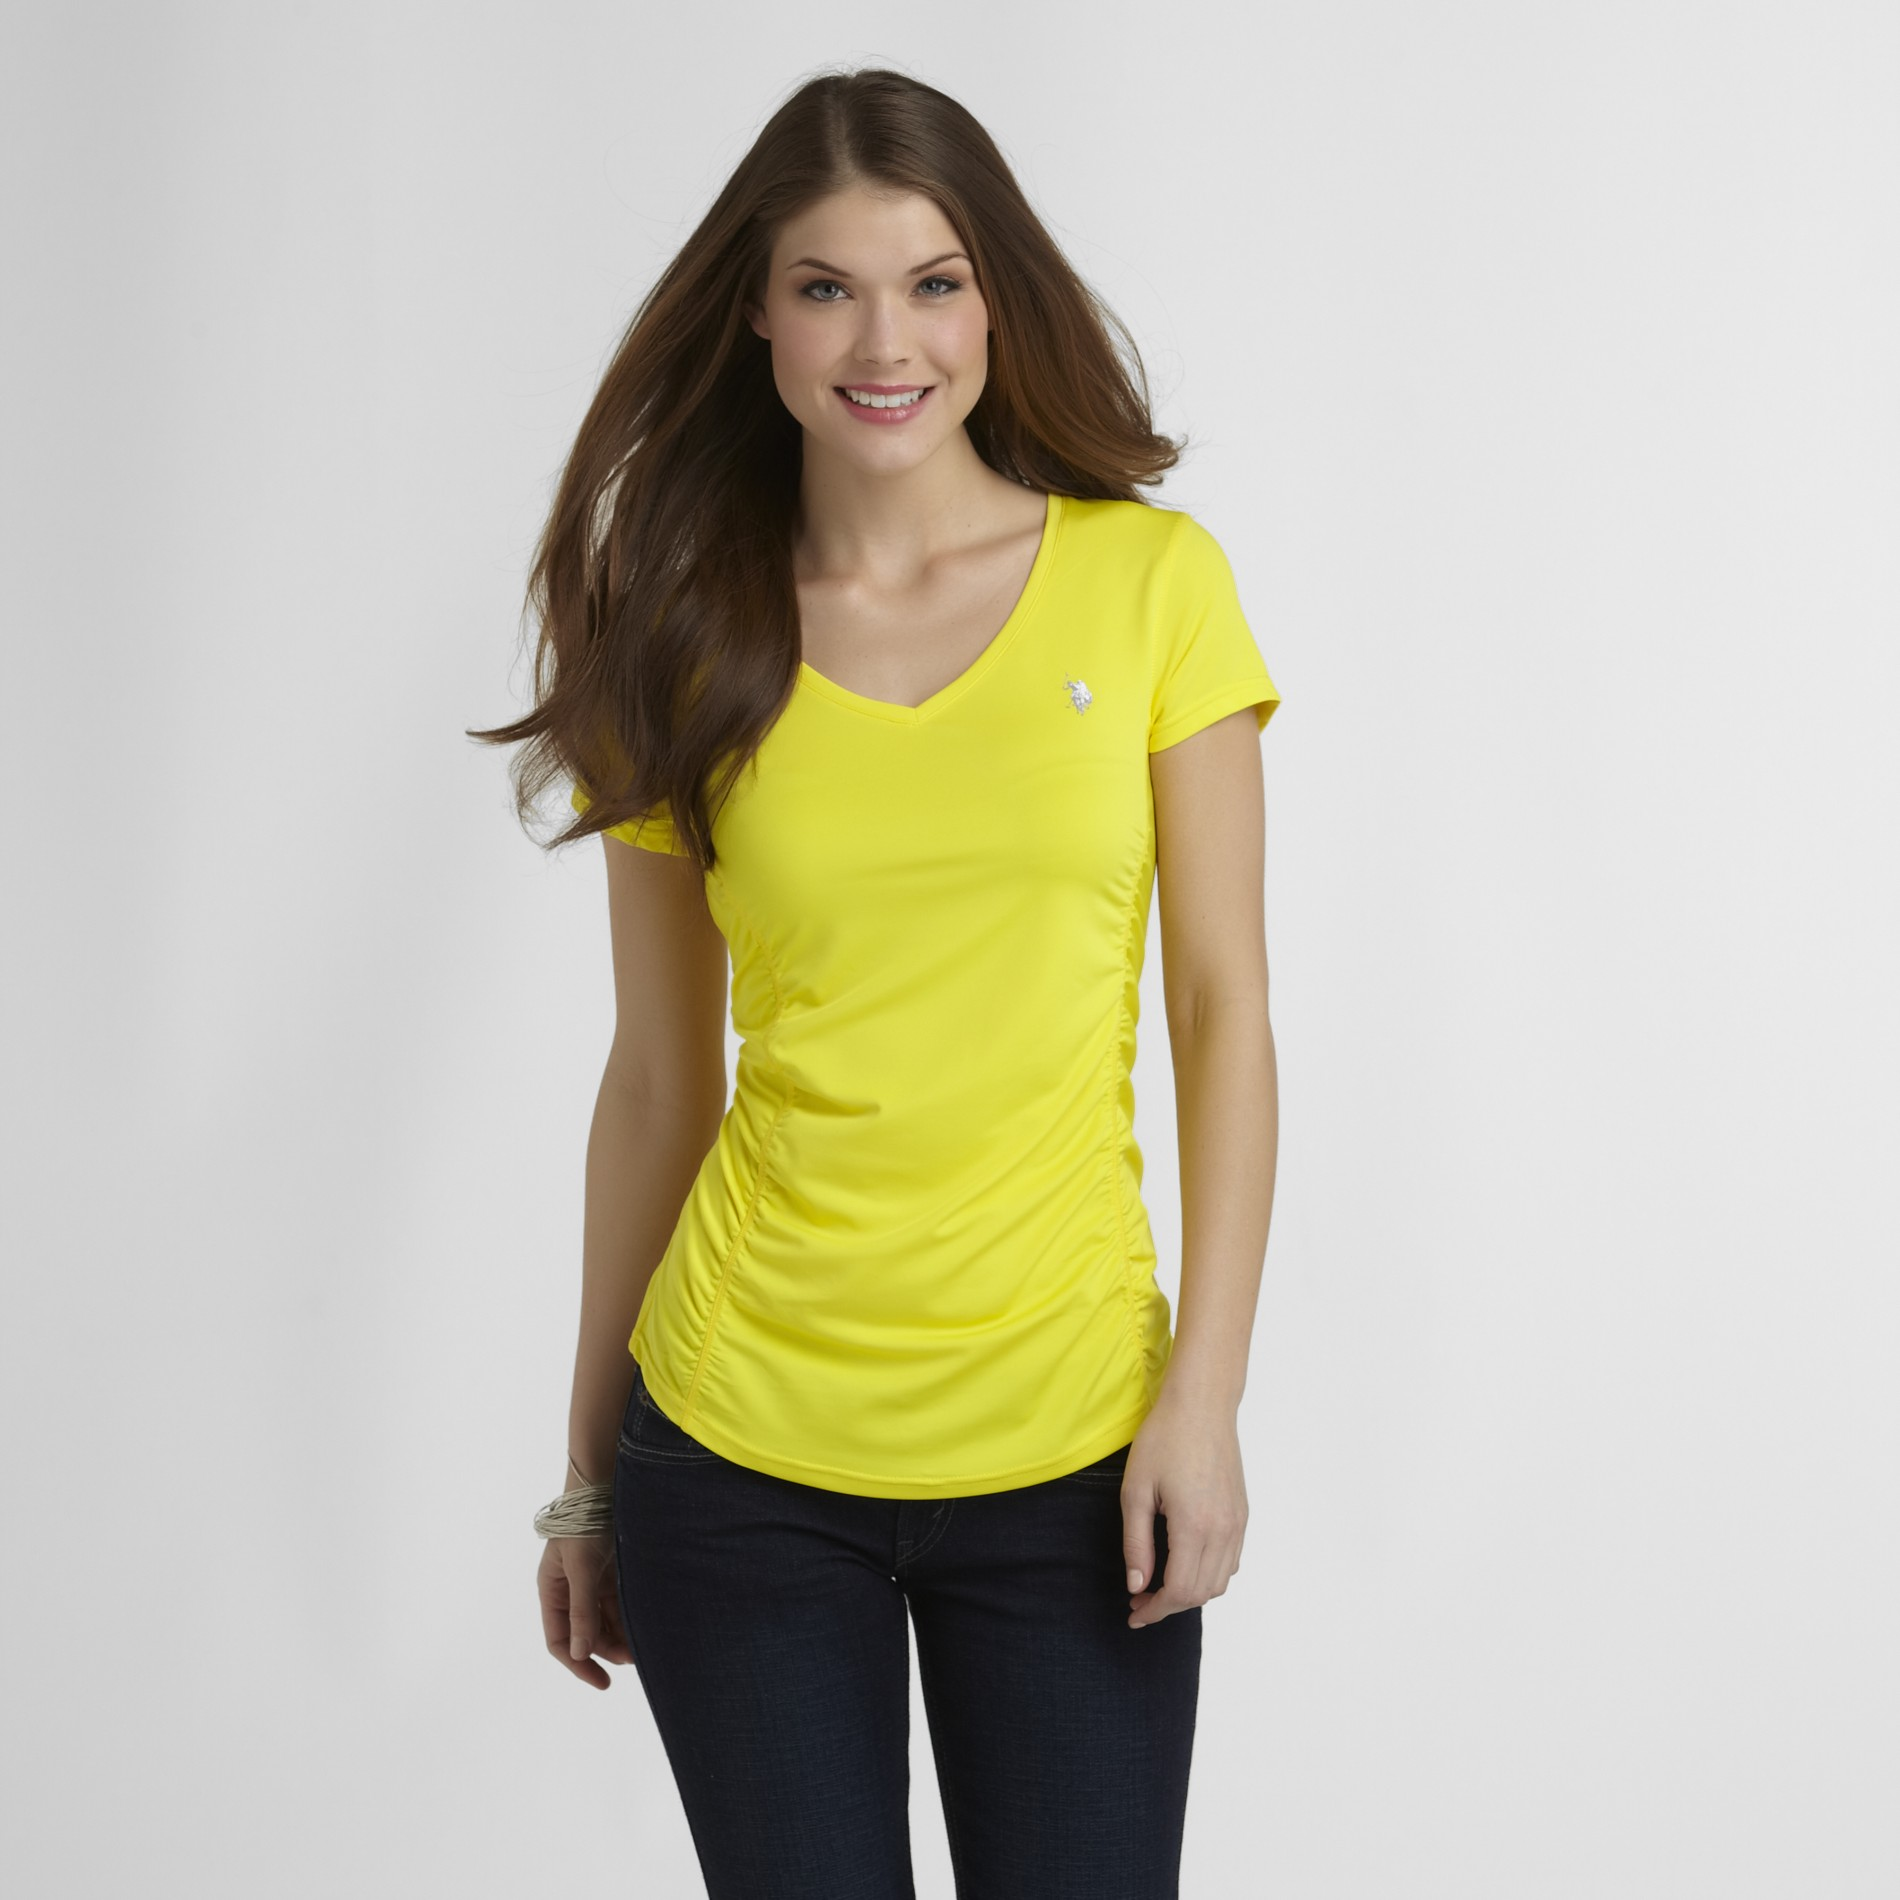 US Polo Assn. Women's Performance T-Shirt at Sears.com